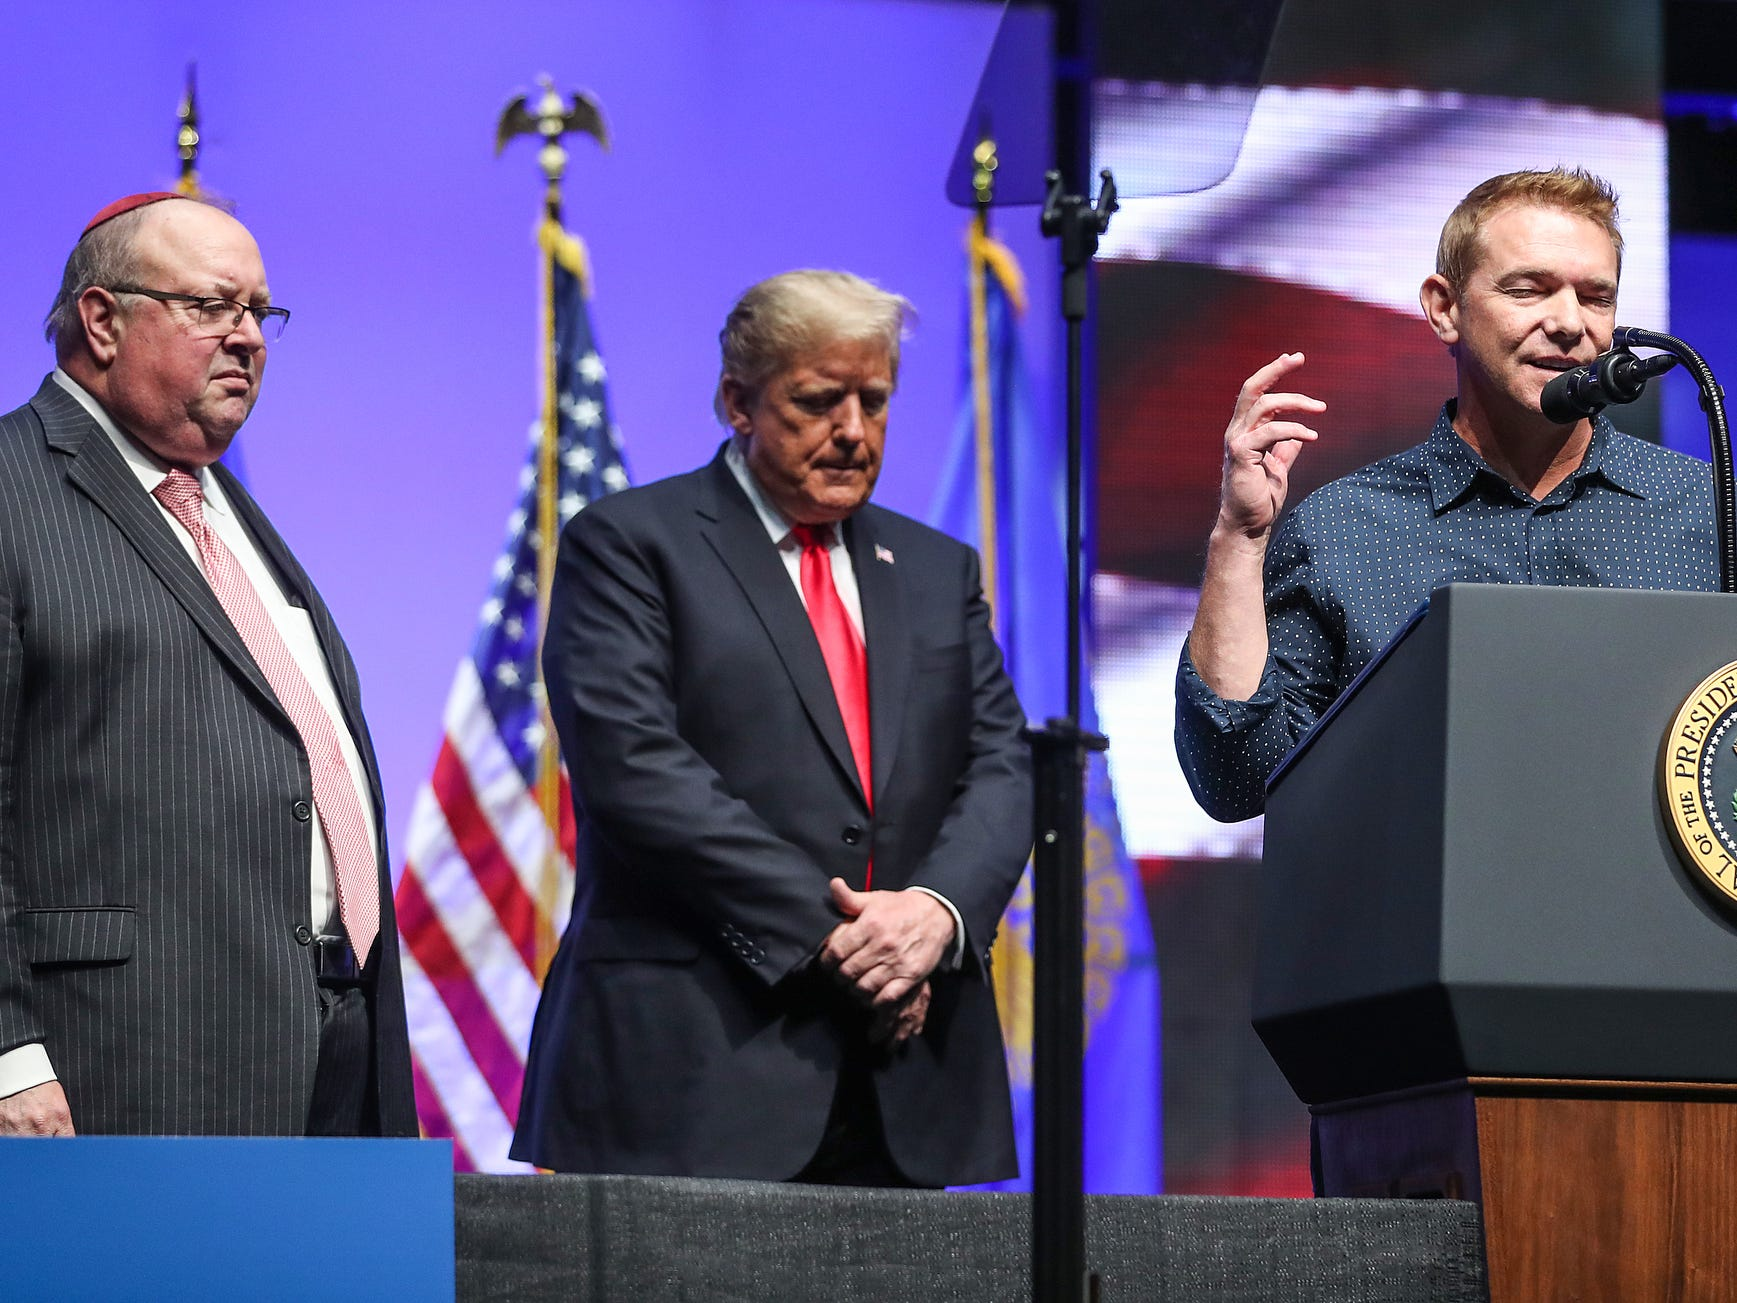 United States President Donald Trump brought local Rabbi Benjamin Sendrow, left, and Pastor Thom O'Leary, right, onstage to say prayers in light of the morning's synagogue shooting in Pittsburgh, during his speech at the annual Future Farmers of America Convention and Expo at Banker's Life Fieldhouse in Indianapolis, Saturday, Oct. 27, 2018.